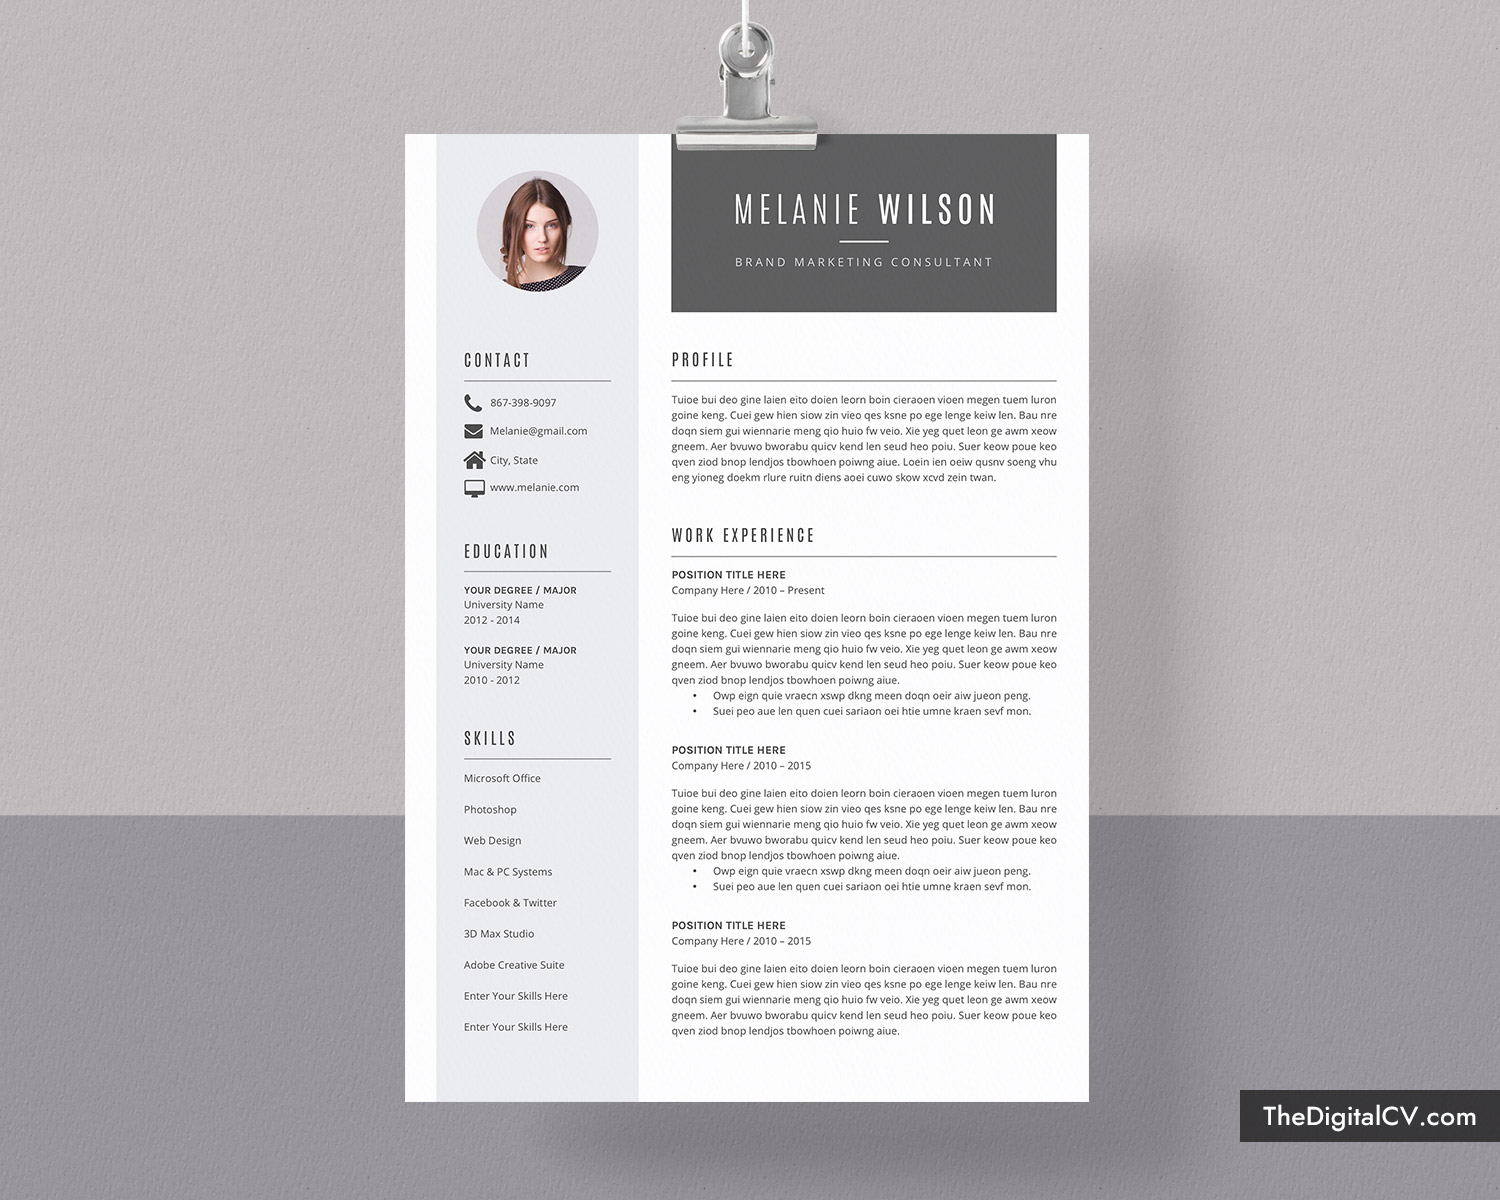 Professional curriculum vitae editor site for mba help writing management literature review